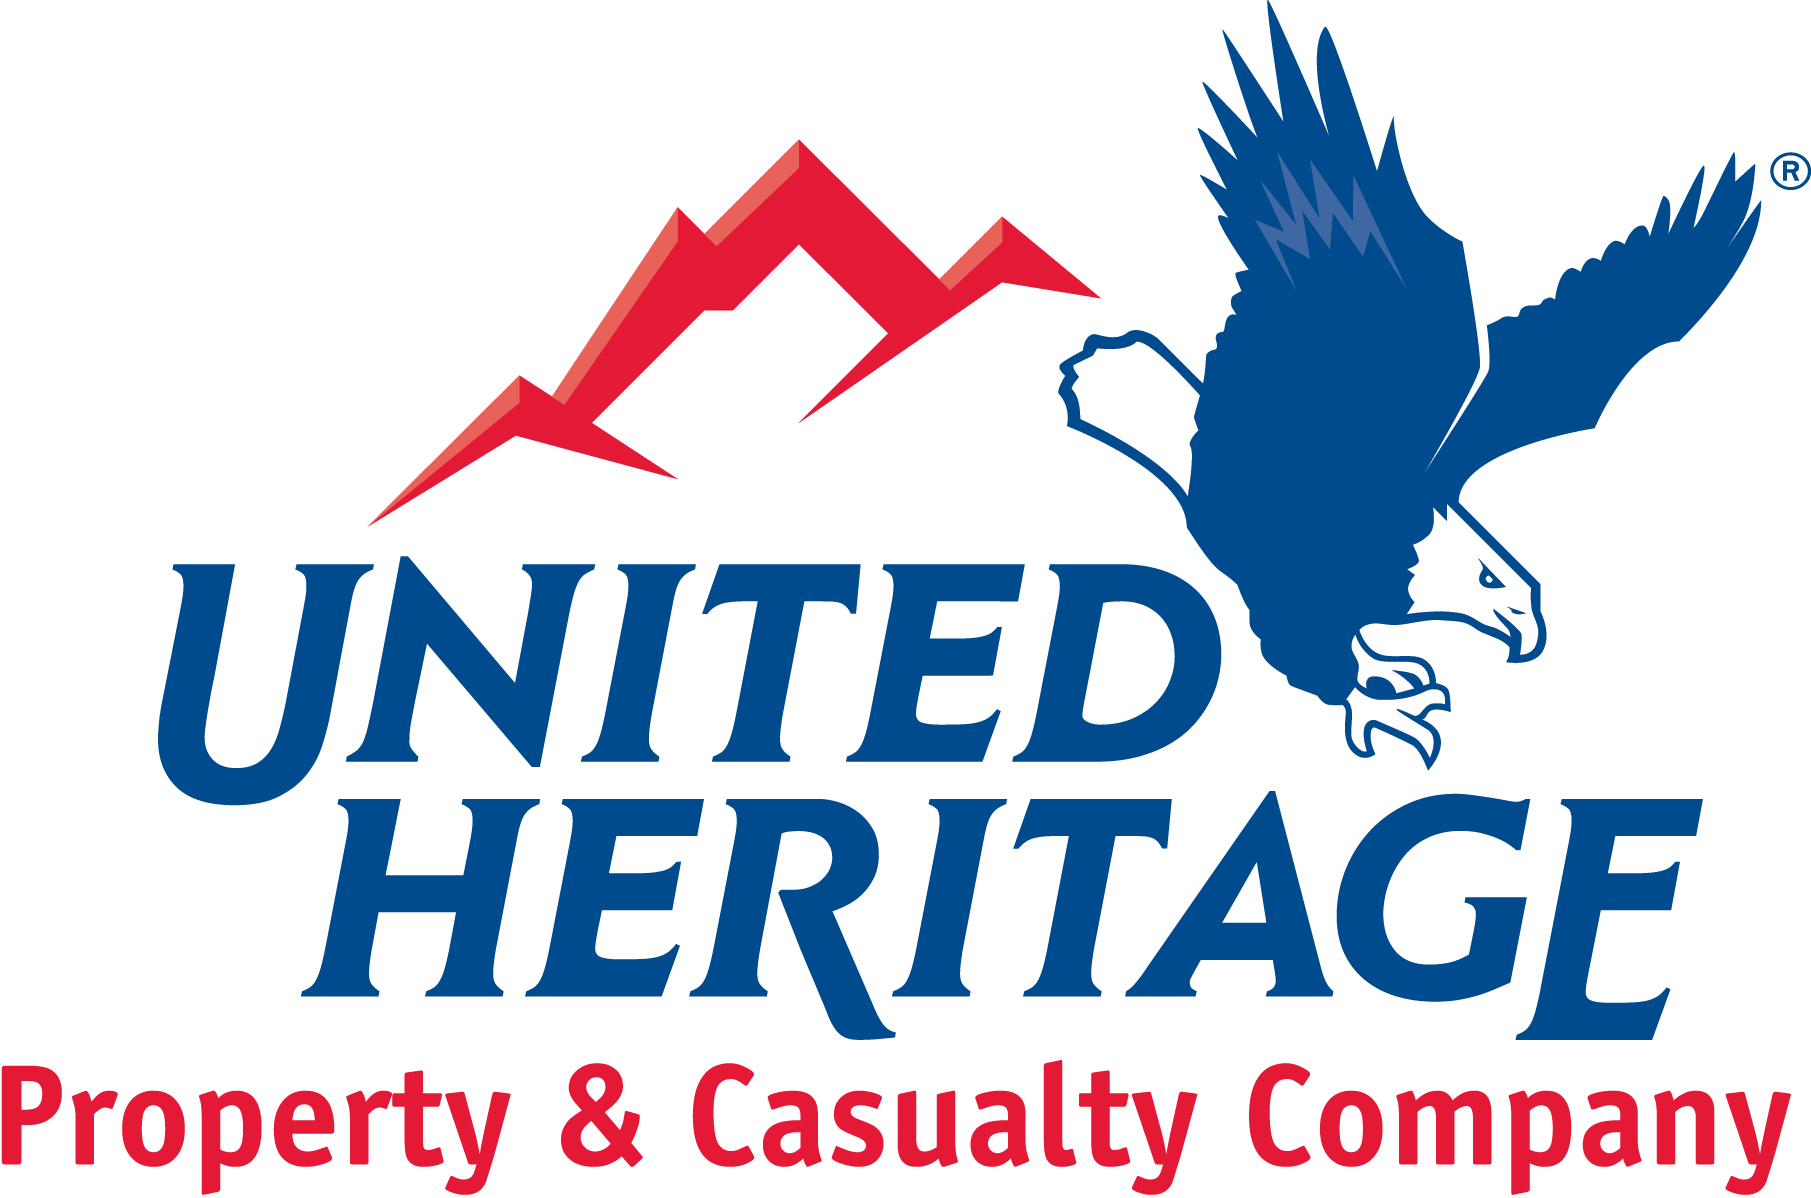 United Heritage Premier Agent Tucson Arizona 520 901 7010 With